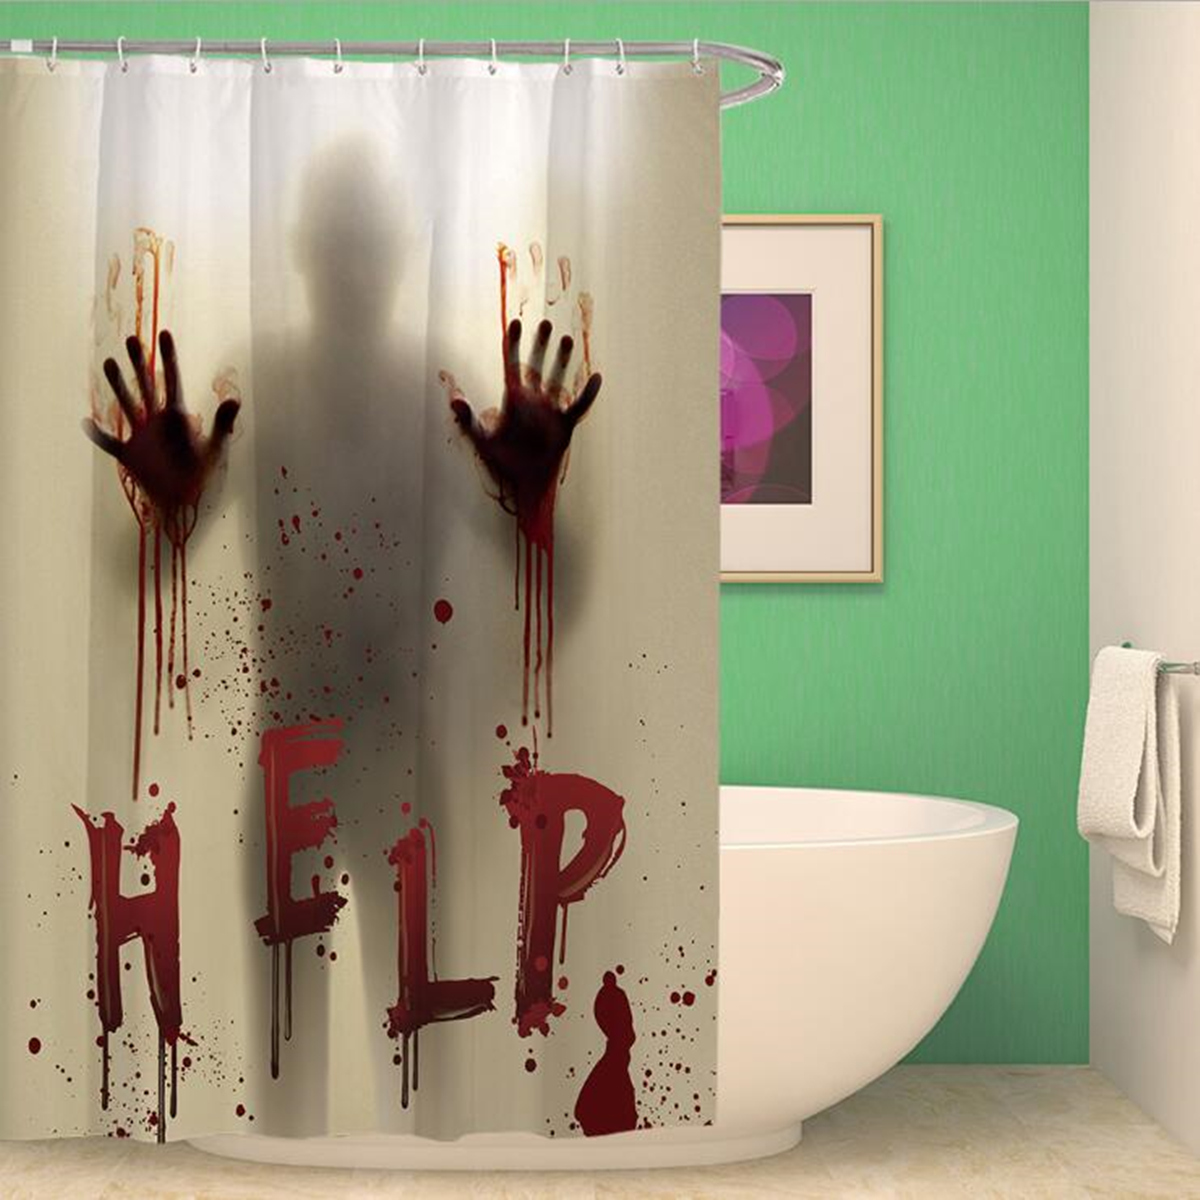 Halloween Horror Shower Curtain Waterproof Scary Bloody Hands